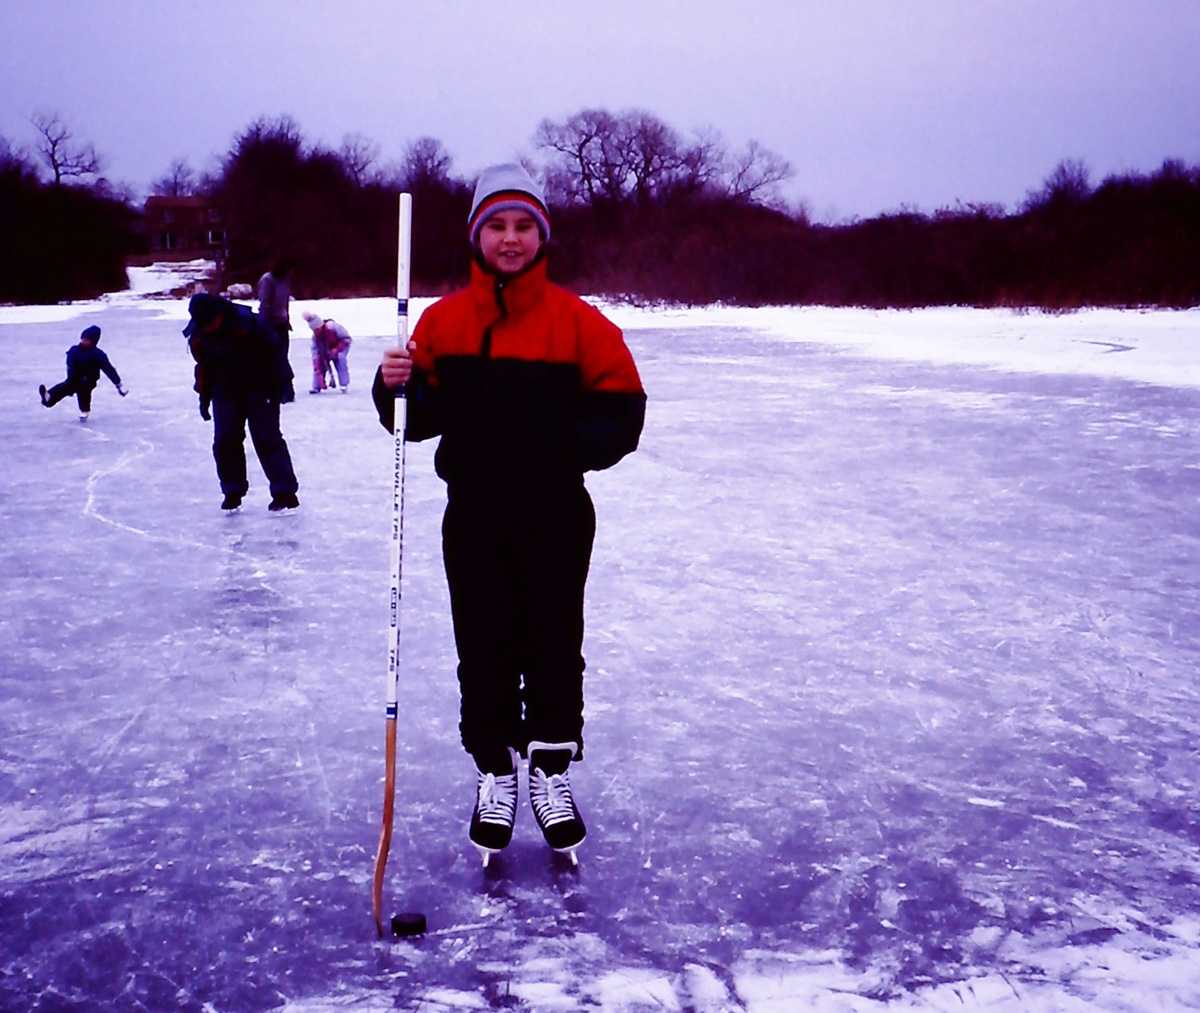 my one attempt at playing ice hockey